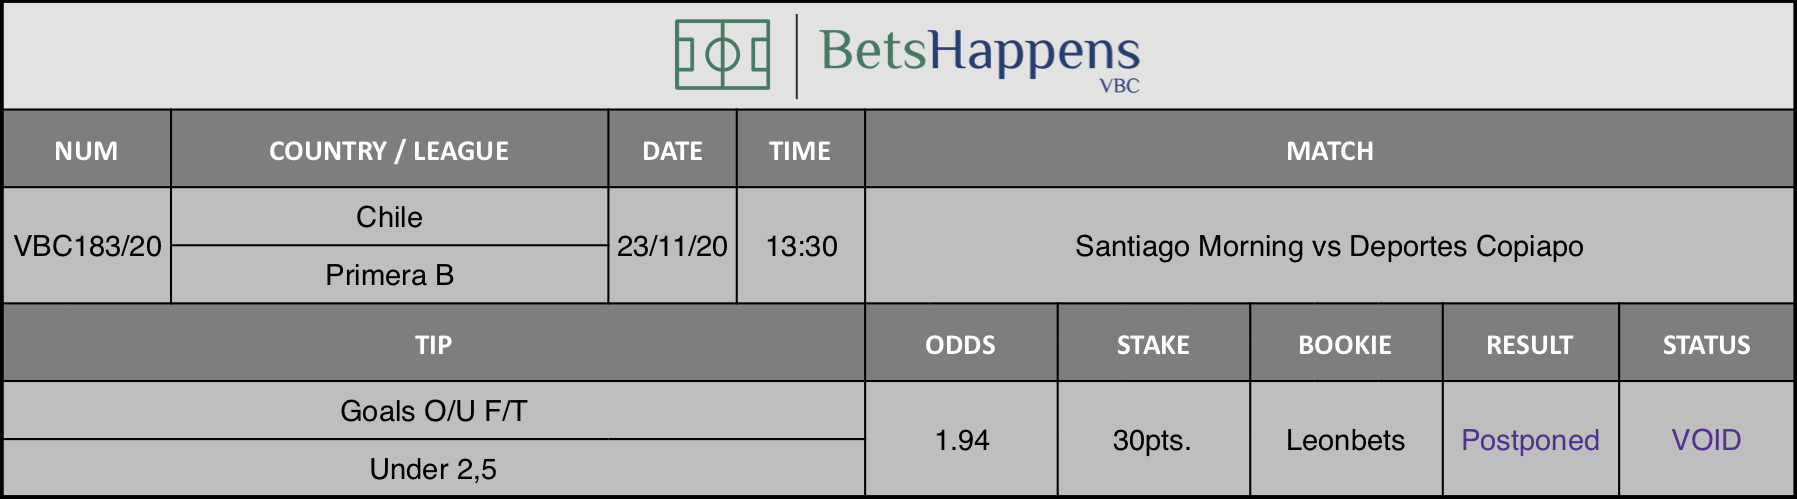 Results of our tip for the Santiago Morning vs Deportes Copiapo match where Goals O/U F/T Under 2,5 is recommended.